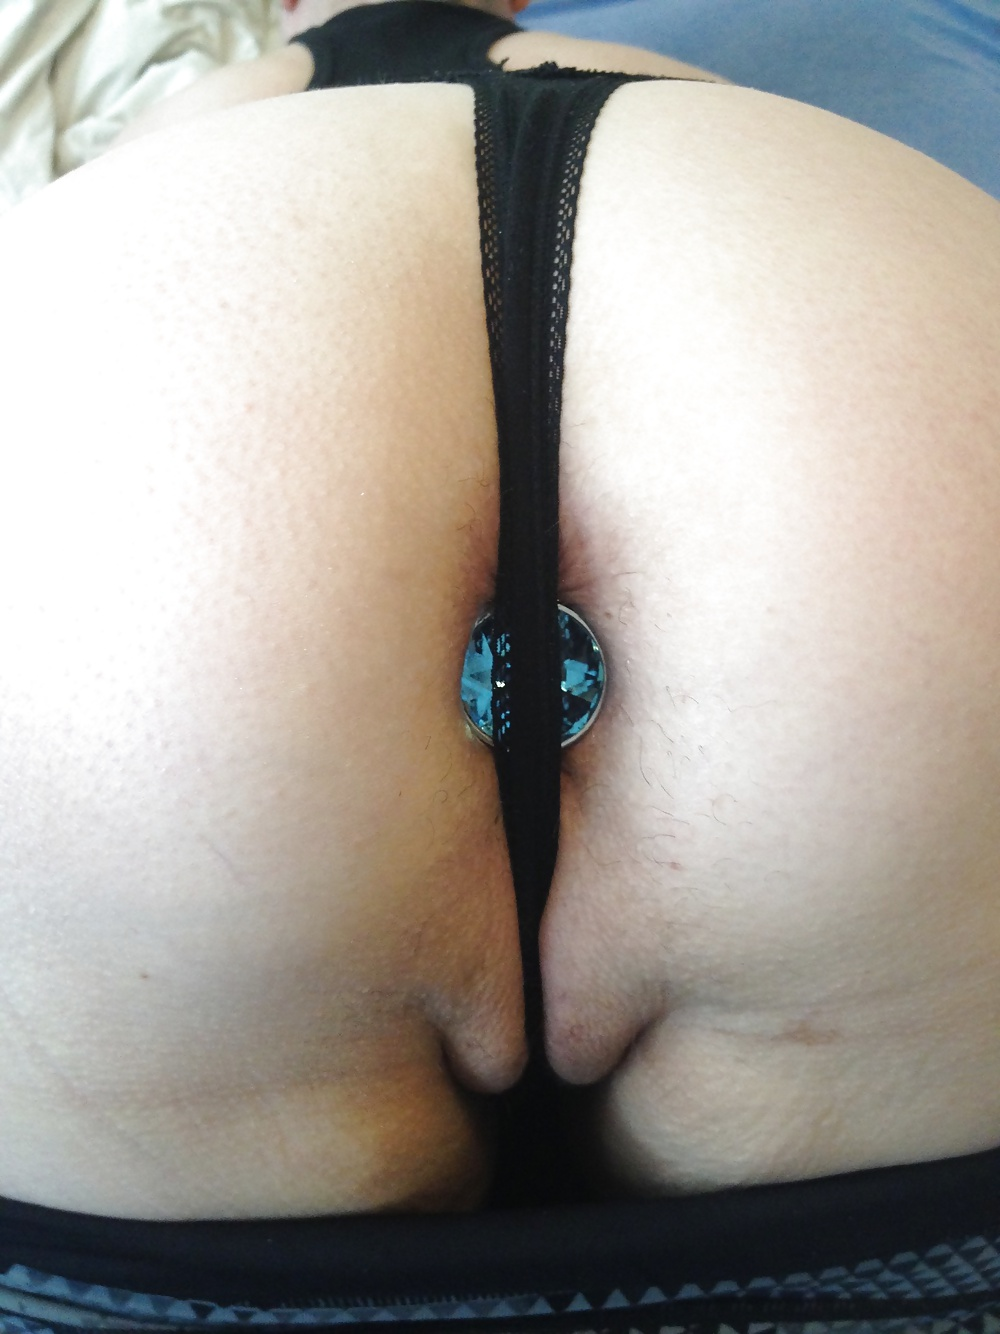 Online videos butt plugs in use — pic 5